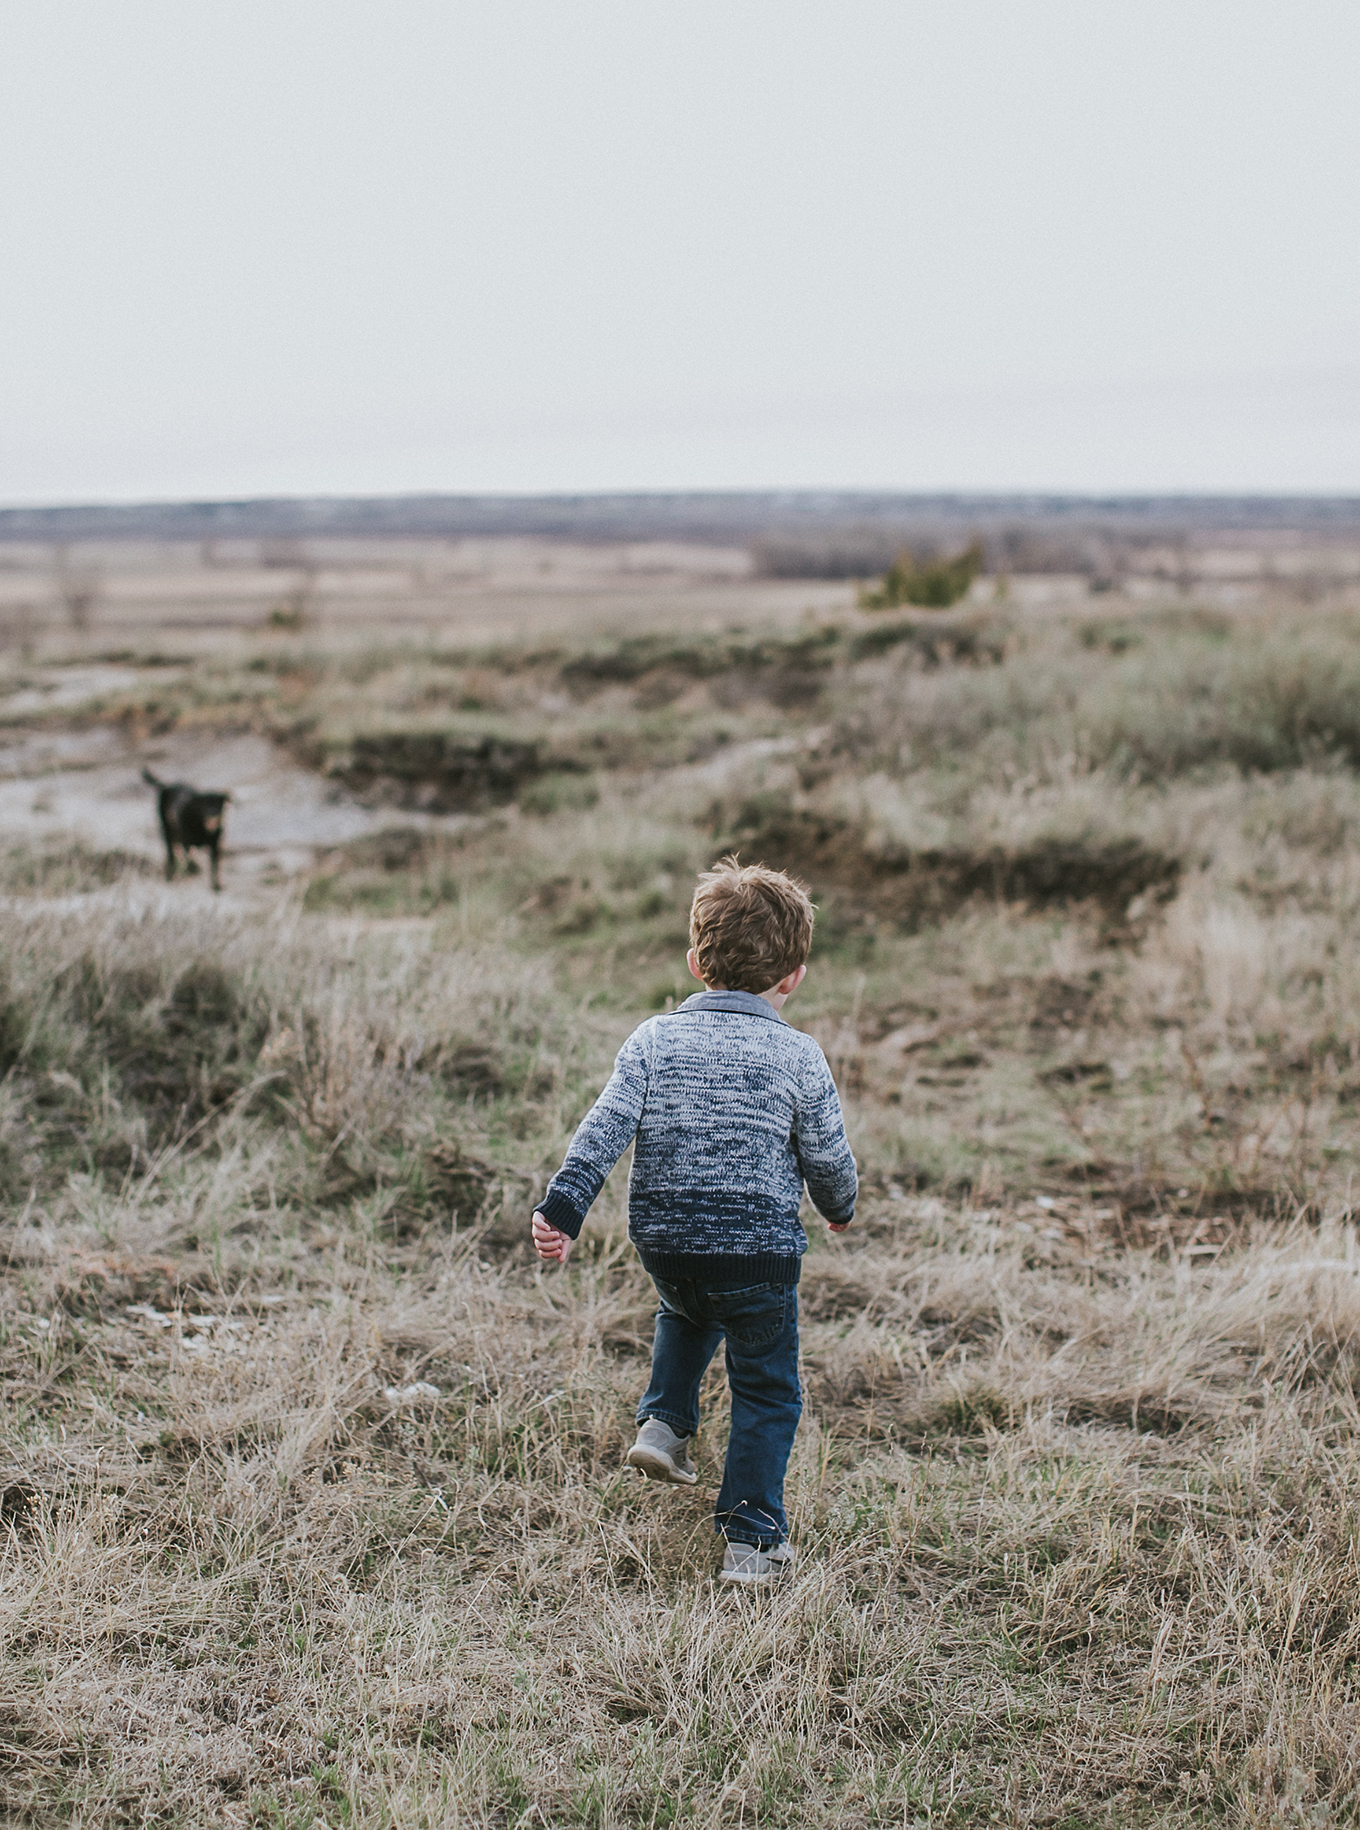 How to savor these fleeting moments with our children – even when it feels impossible.